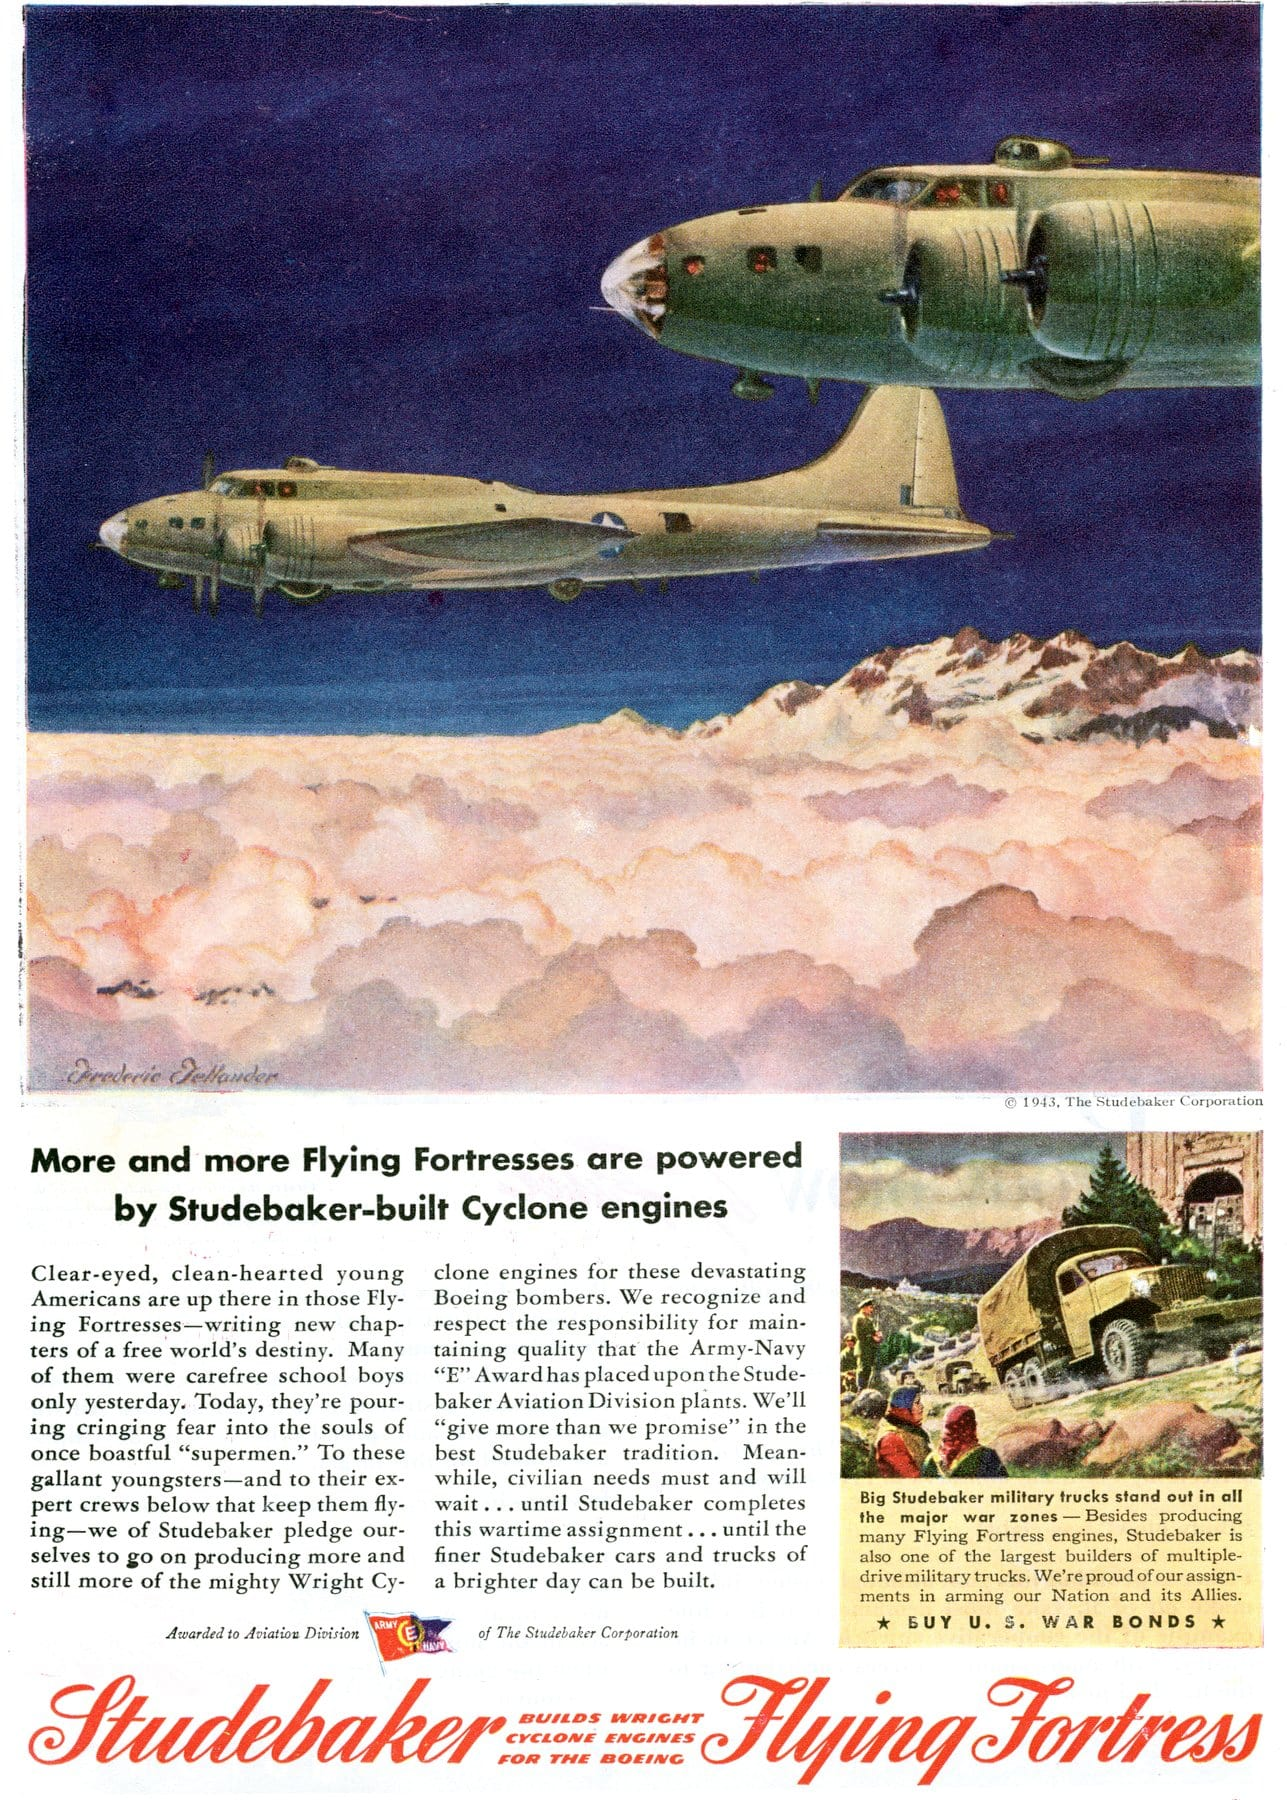 WWII Flying Fortresses powered by Studebaker-built Cyclone engines (1943)